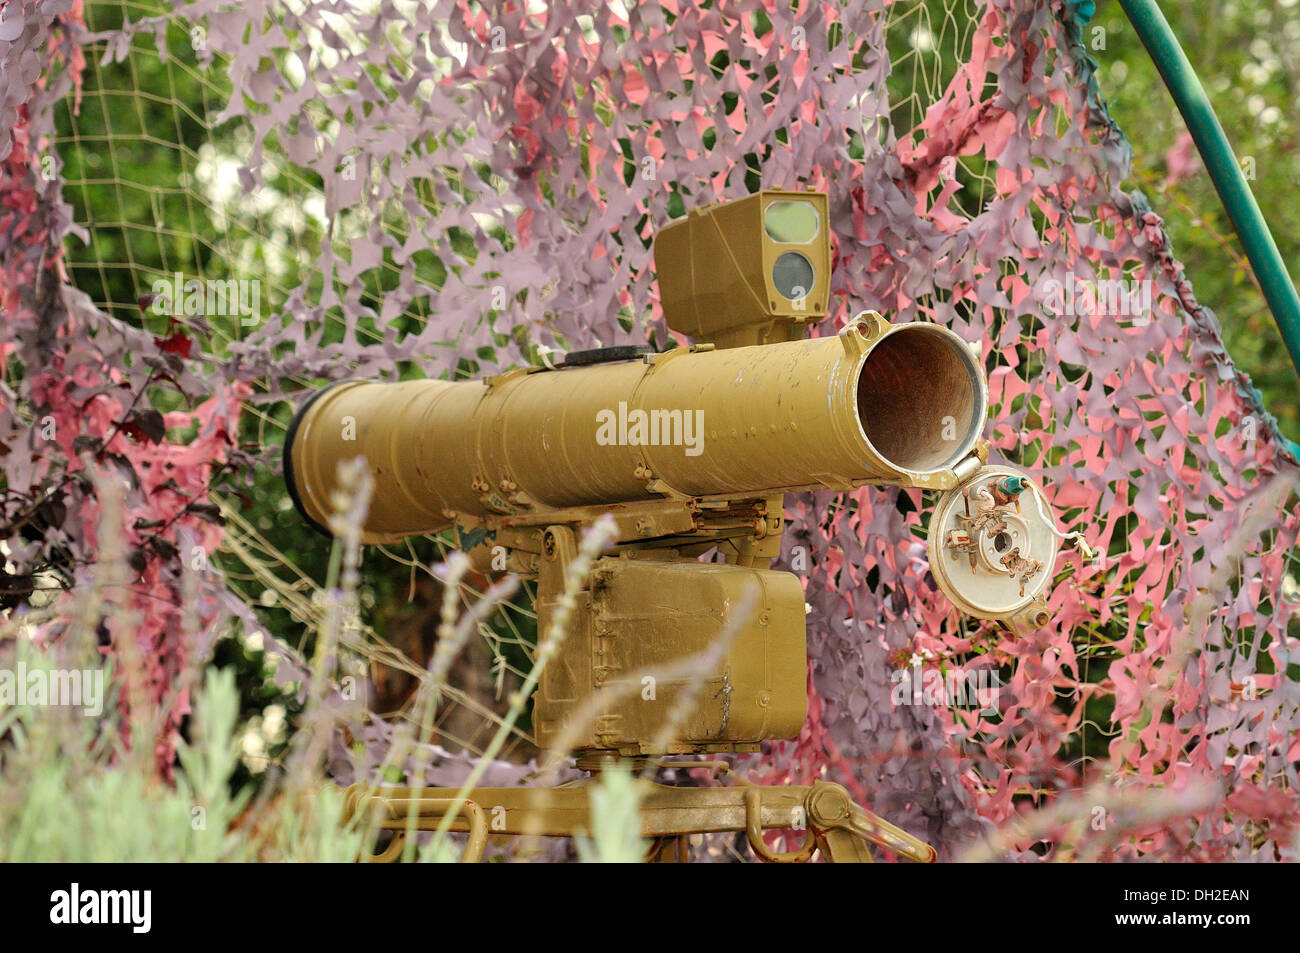 The 9K111 Fagot is a SACLOS wire-guided anti-tank missile system of the Soviet Union.  Its NATO reporting name is AT-4 Spigot. - Stock Image